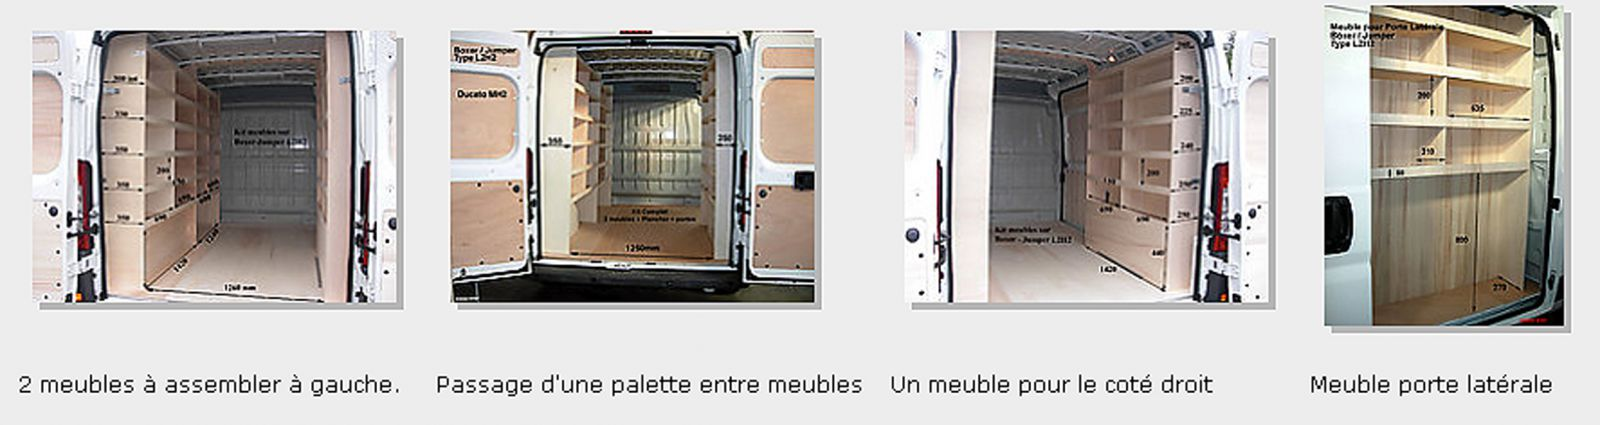 Am nagement pour renault boxer habillage v hicule - Dimension palette europeenne ...